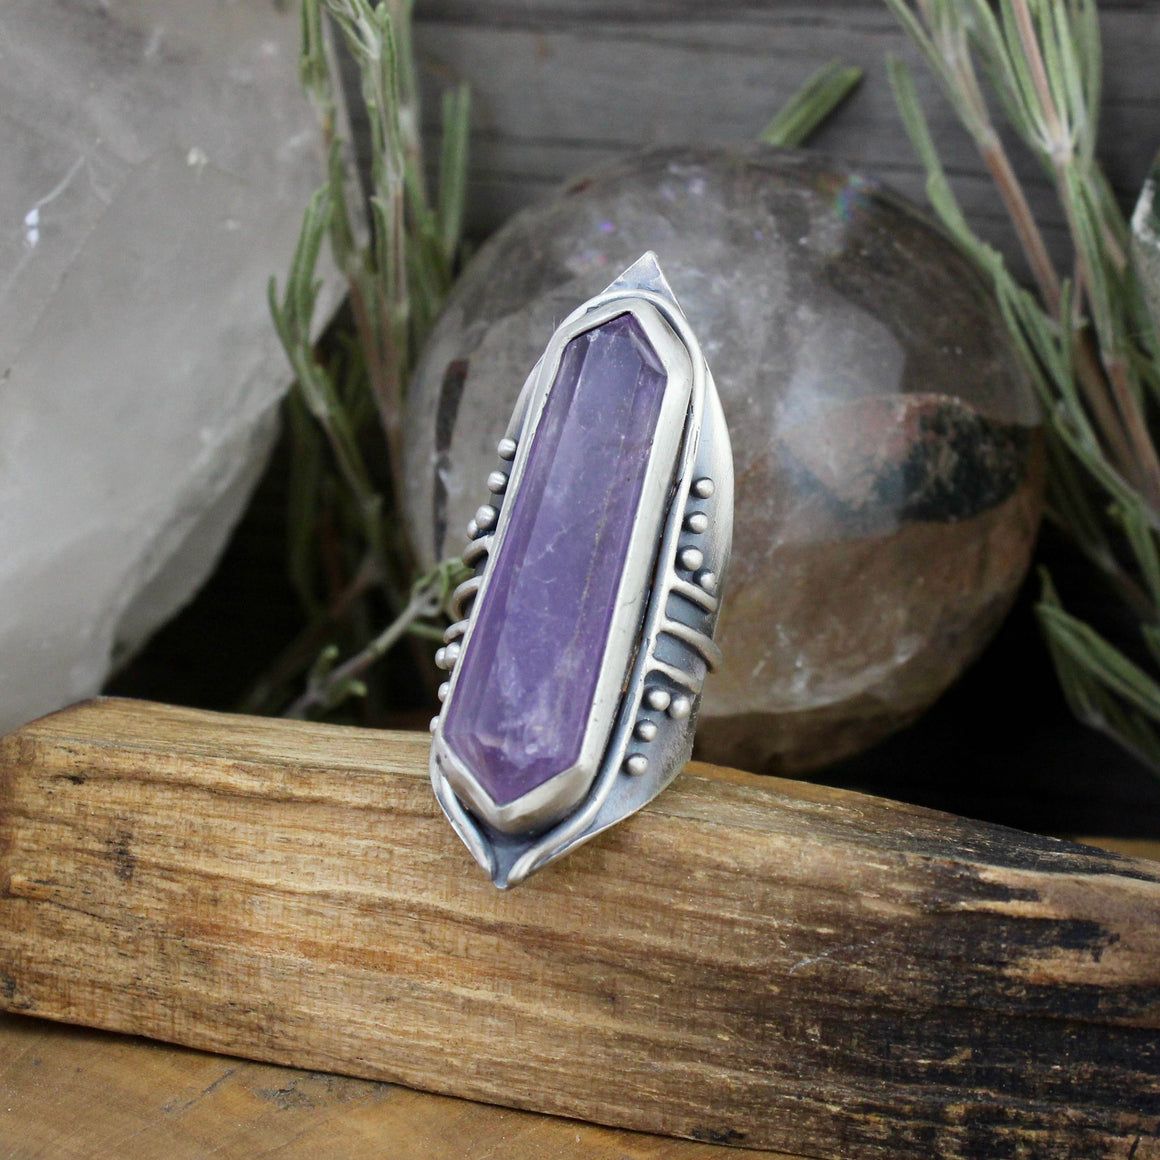 Amplifier Shield Ring // Amethyst - SIZE 8 - acid-queen-jewelry, [product_type] - acid-queen-jewelry, Acid Queen Jewelry - acid-queen-jewelry,  Acid Queen Jewelry - acid-queen-jewelry